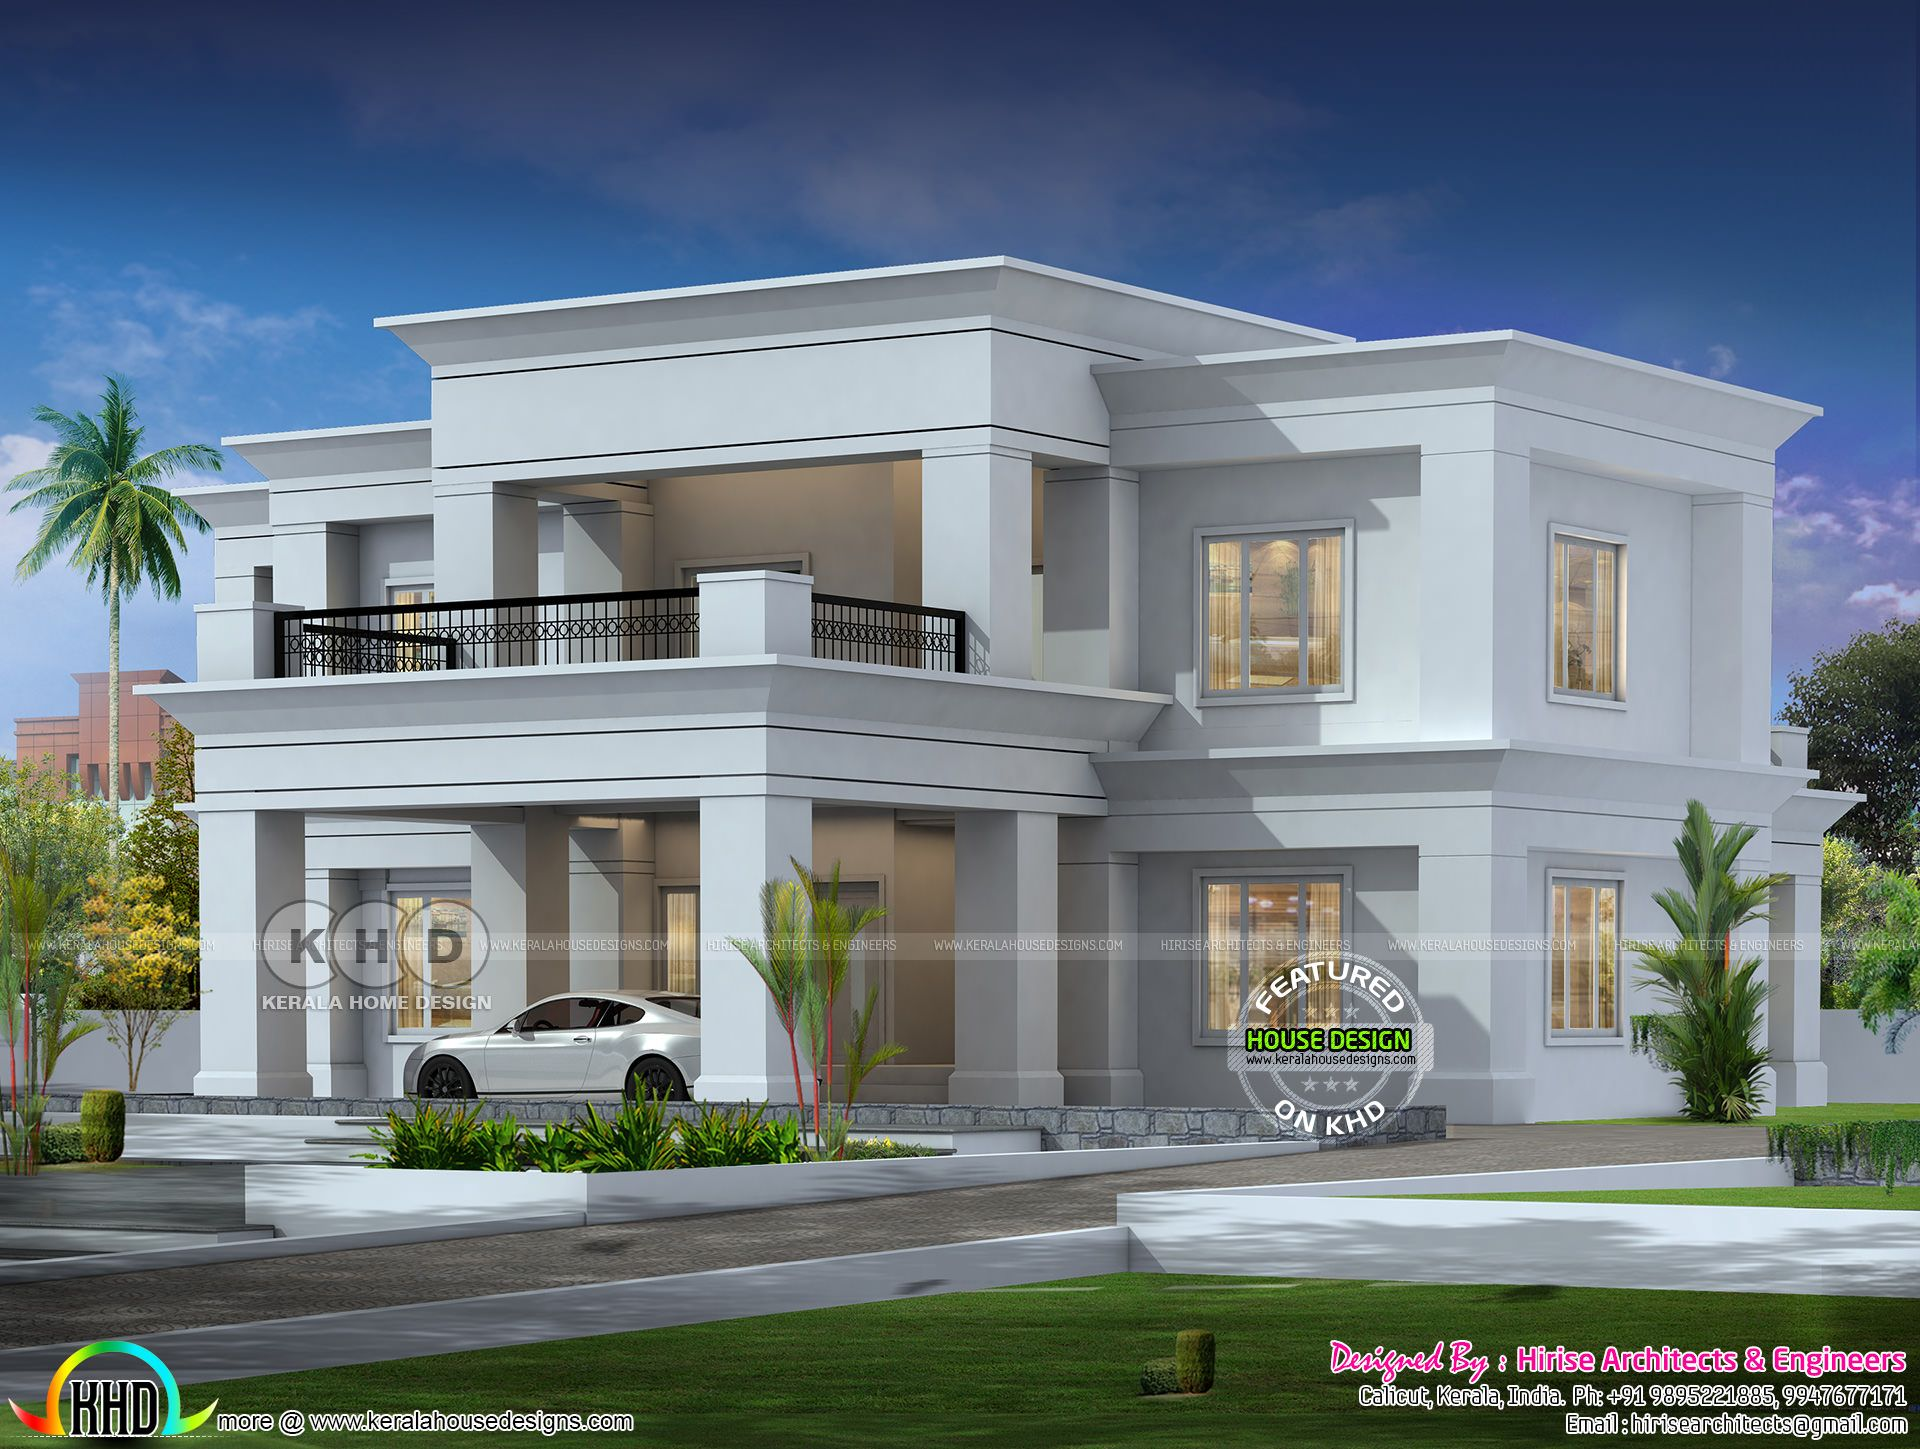 Colonial Type Flat Roof House Architecture Flat Roof House